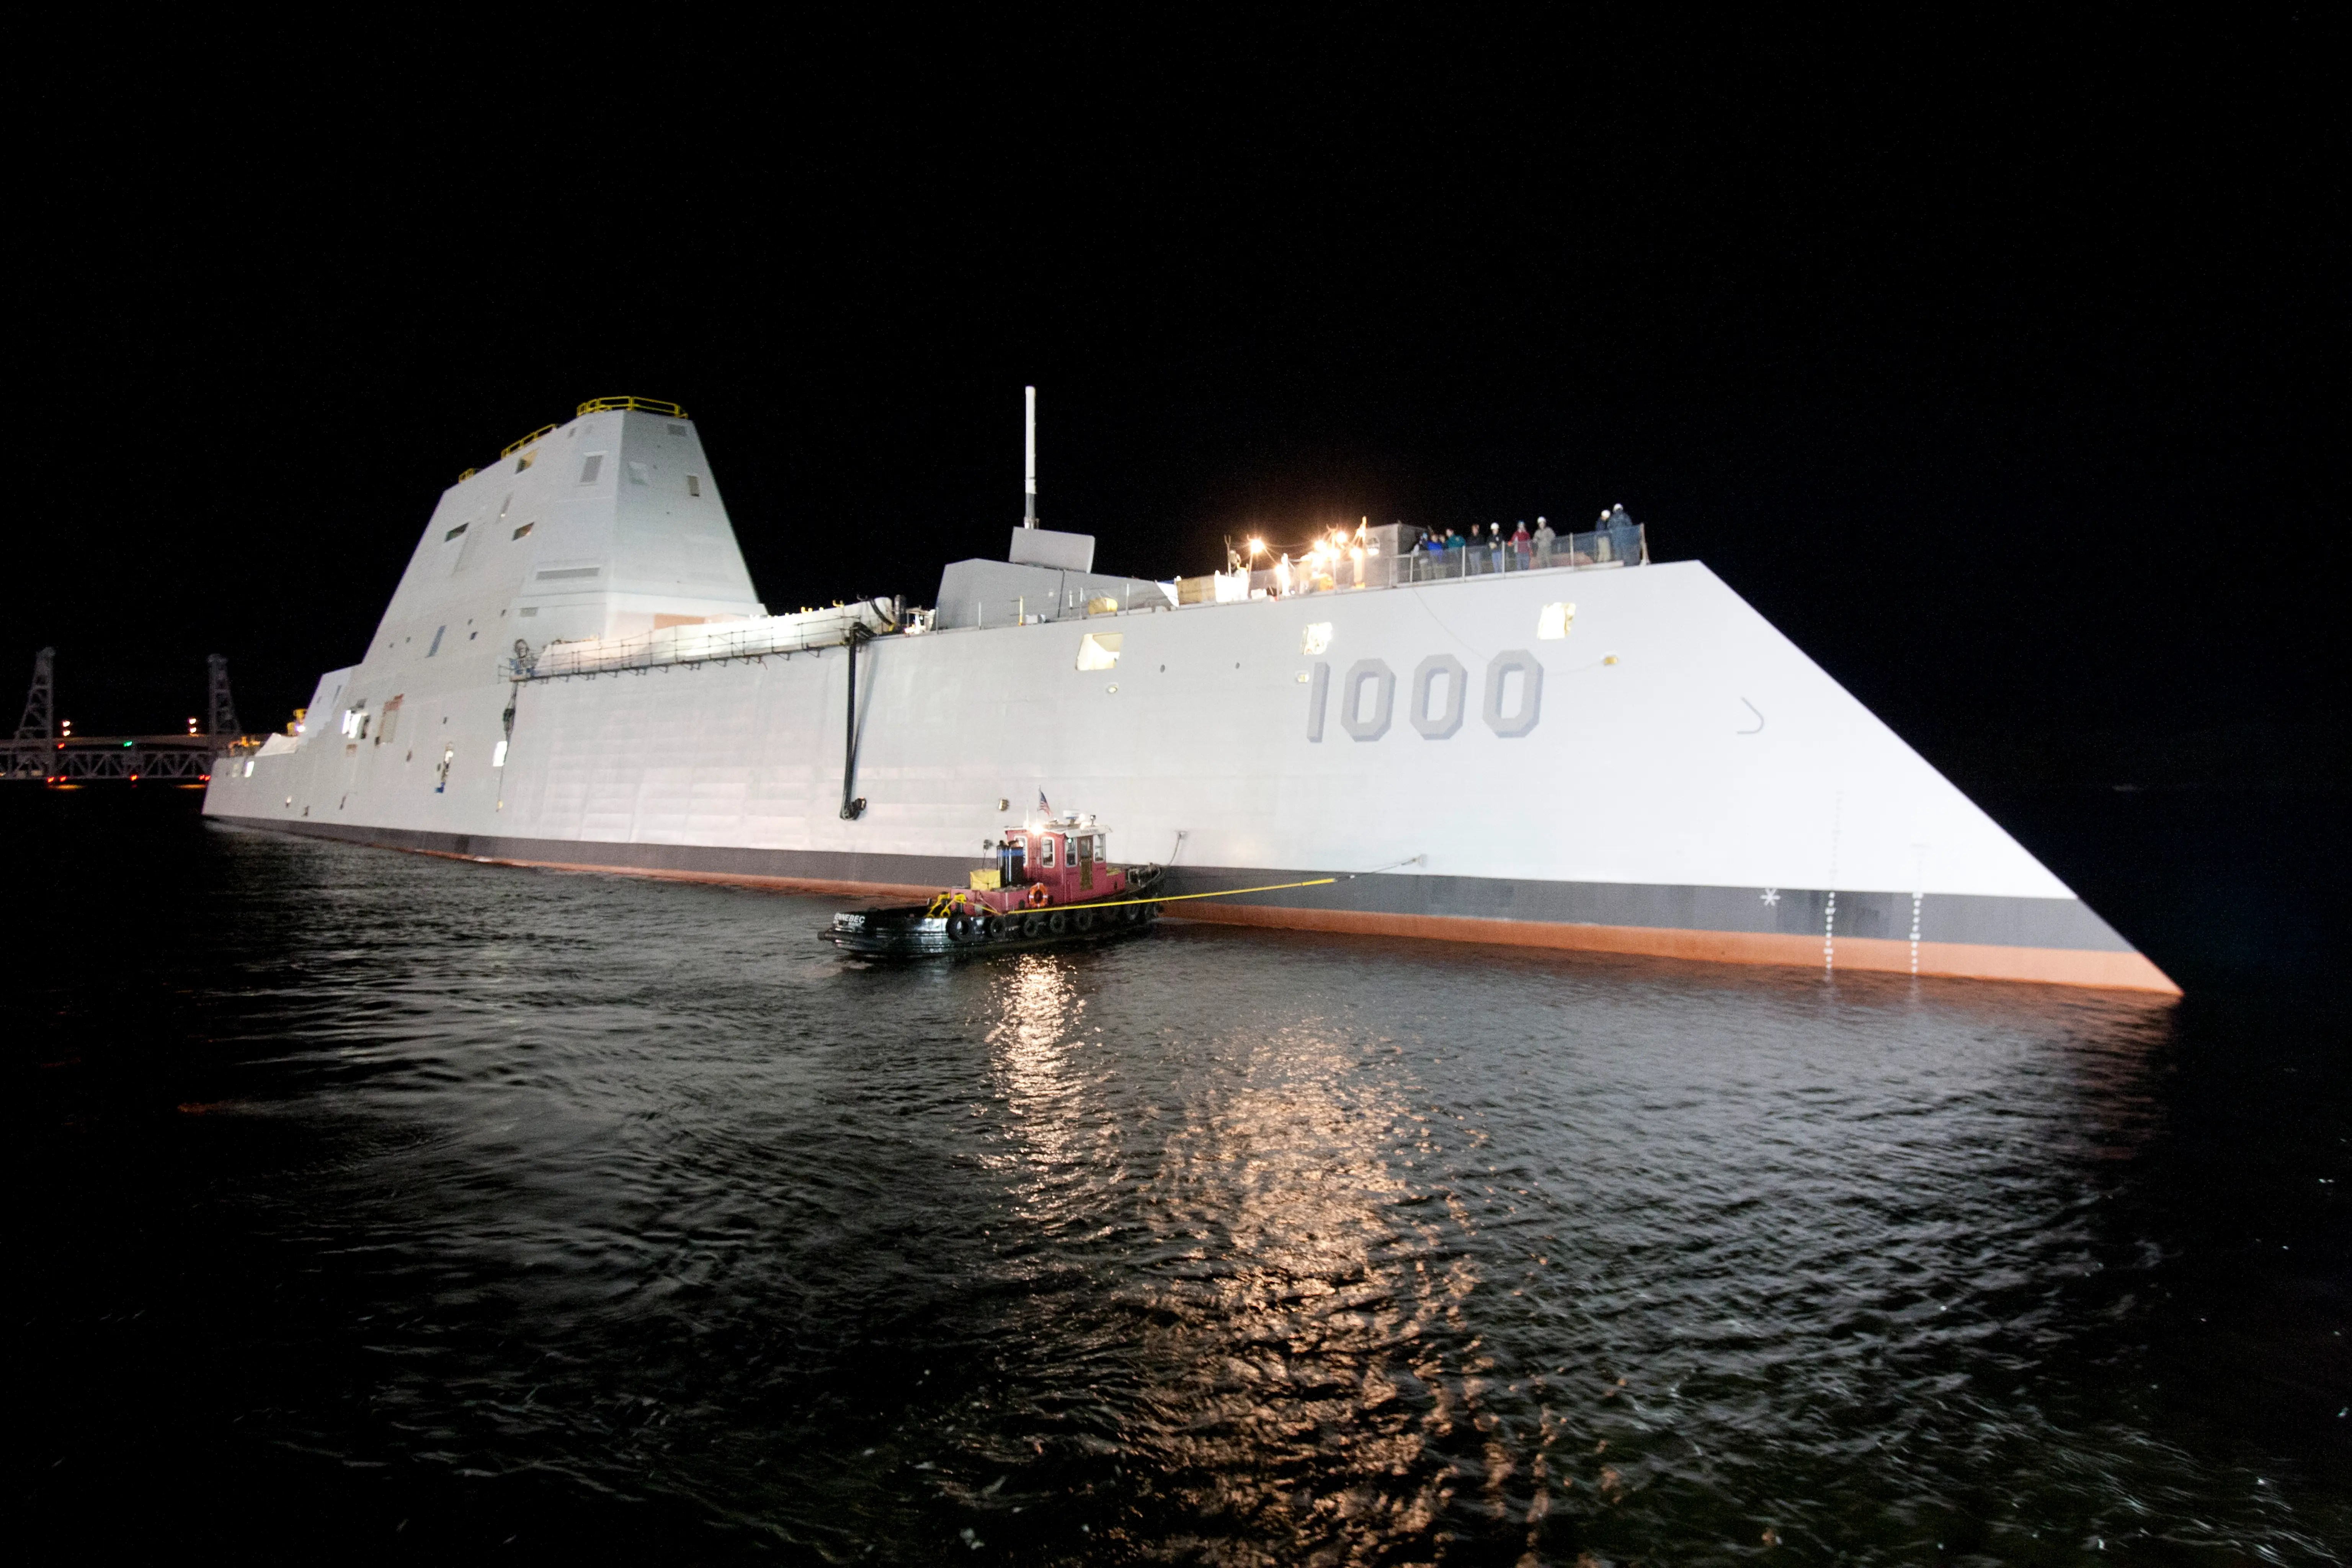 """With the """"tumblehome"""" hull reducing drag and radar detection, along with such advanced weapons, it's like the Zumwalt is the Navy SEAL of ships — always operating under cover of night, a ninja of the sea."""